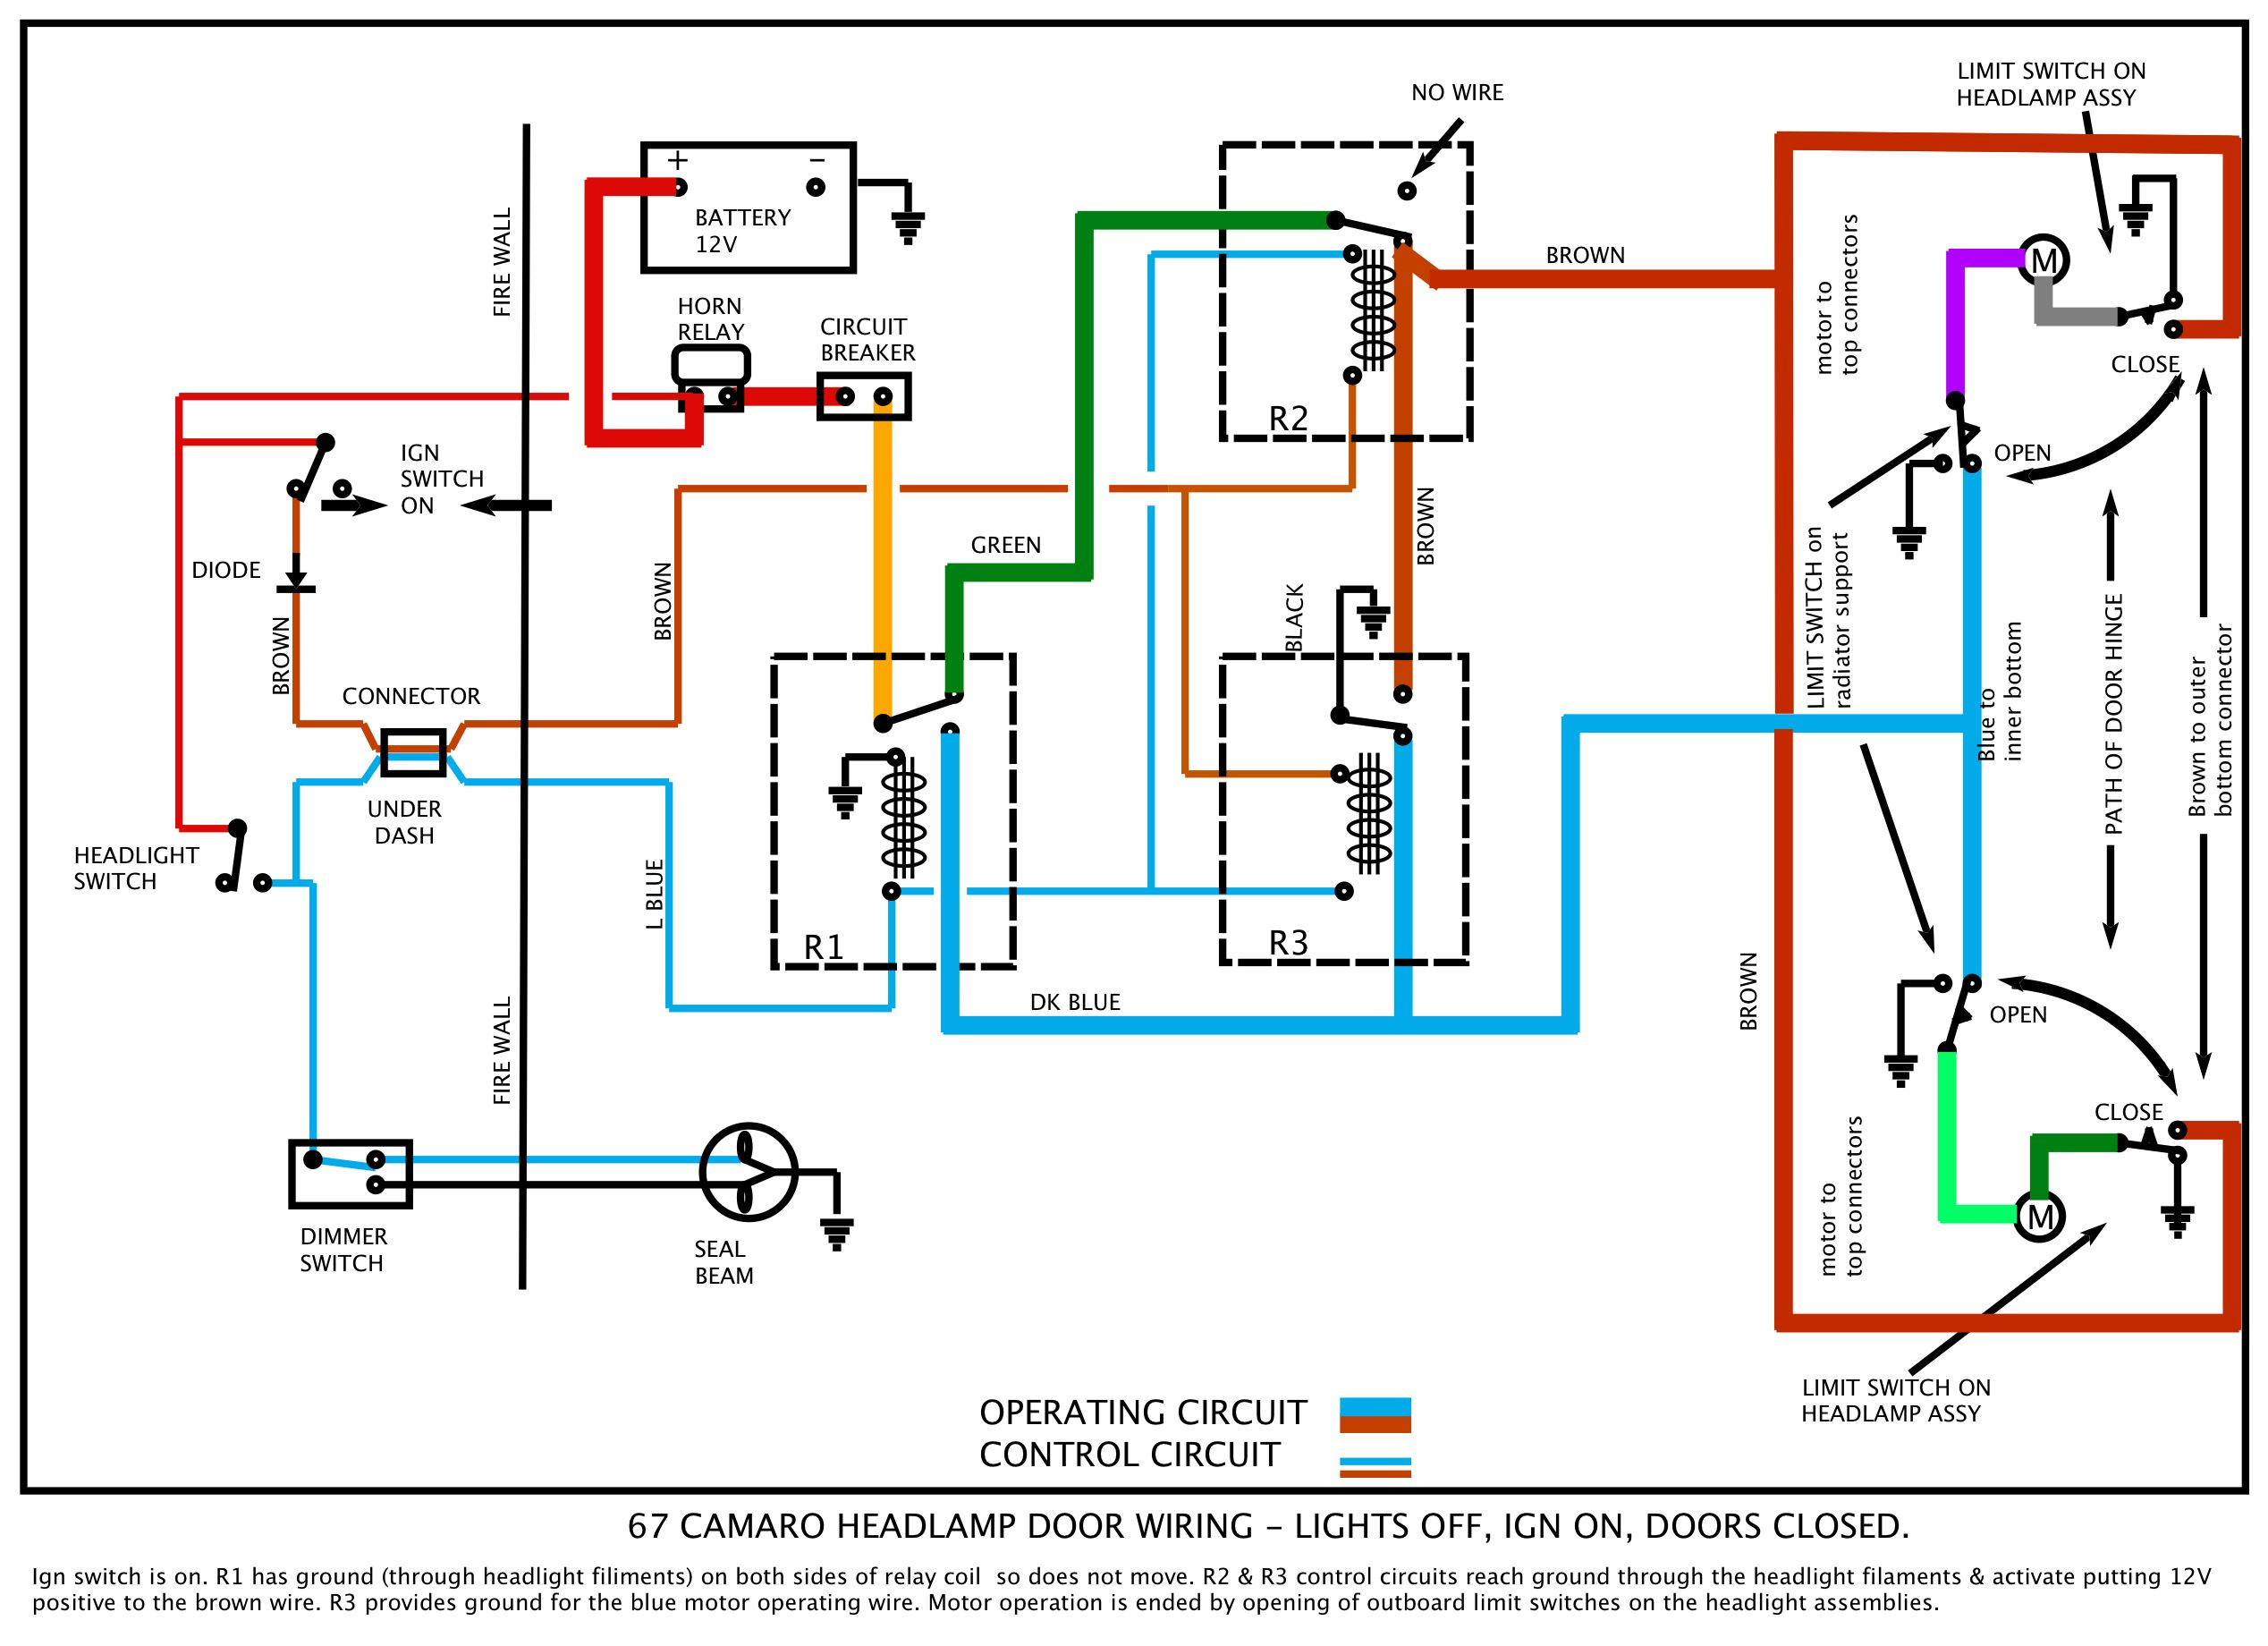 light switch wiring diagram also 1967 pontiac firebird vacuum rh abetter pw